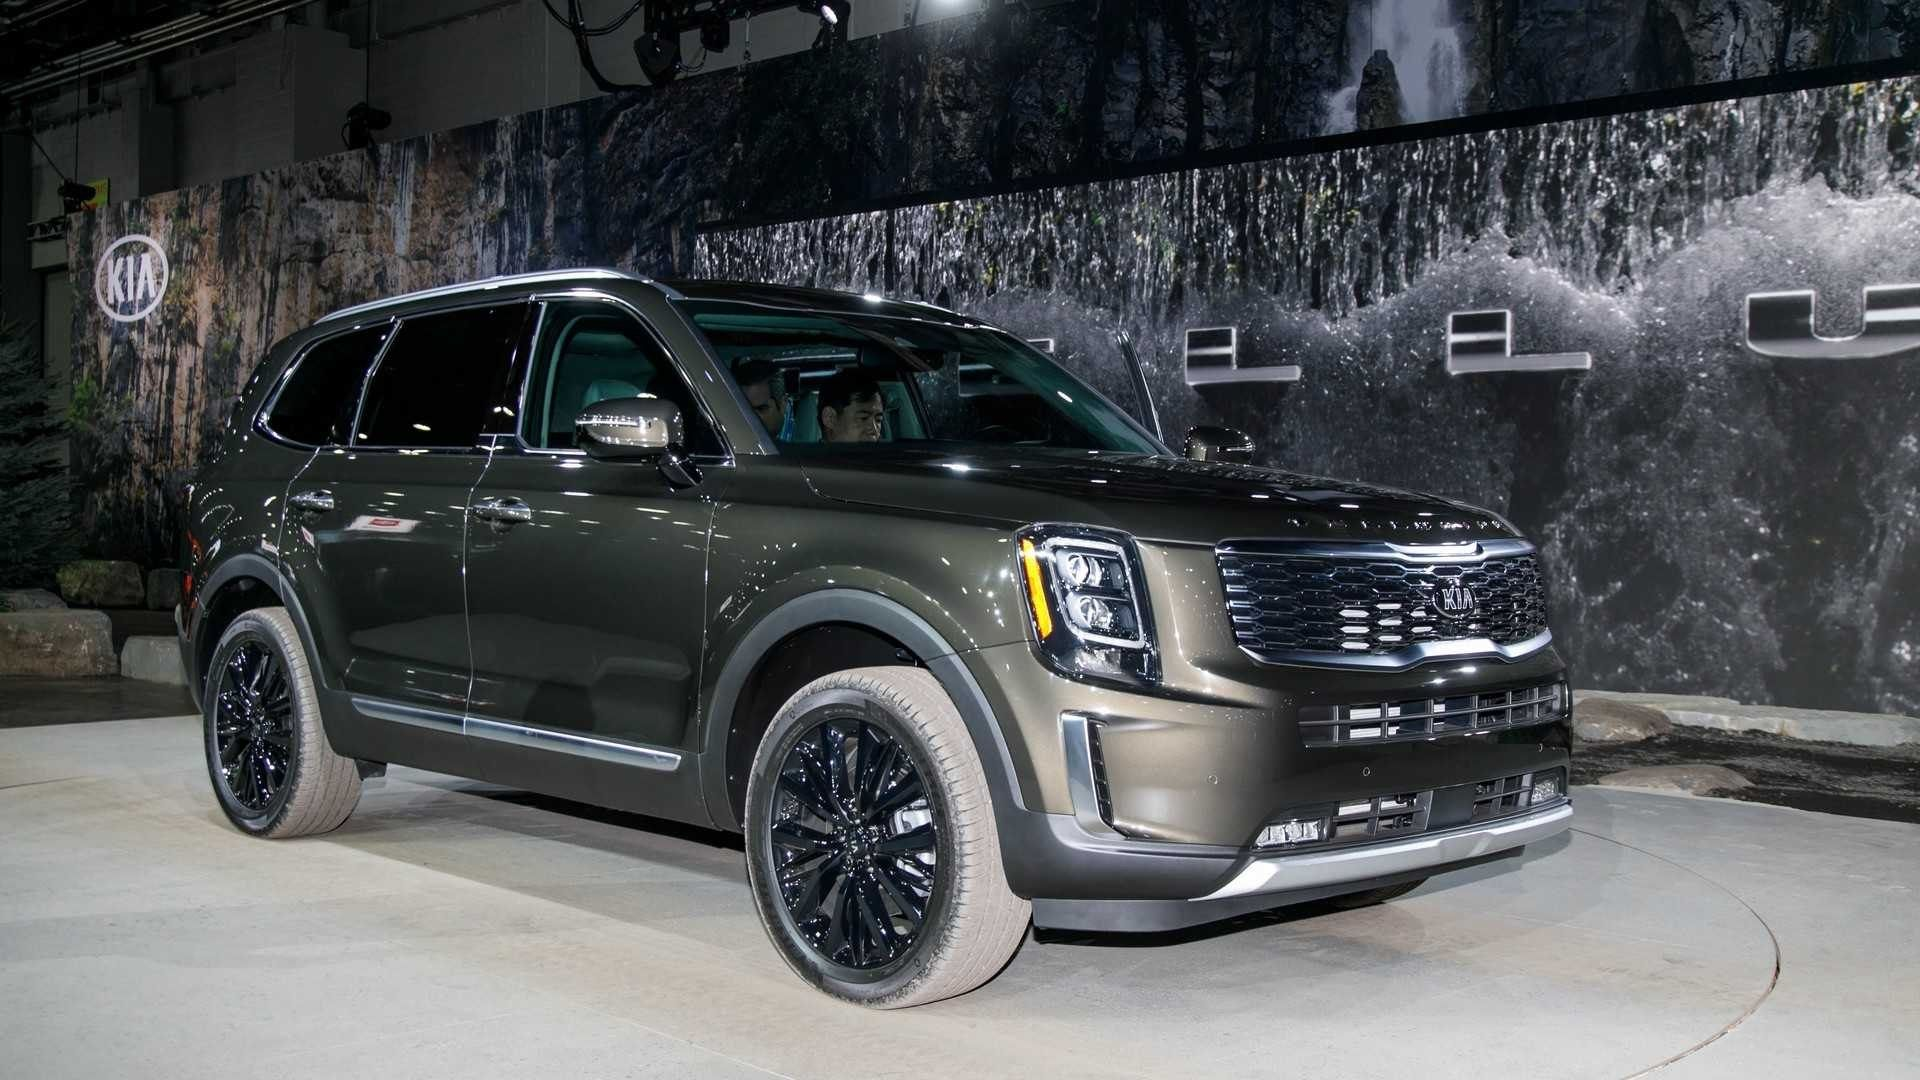 Most Expensive 2020 Kia Telluride Costs 50,775 Release